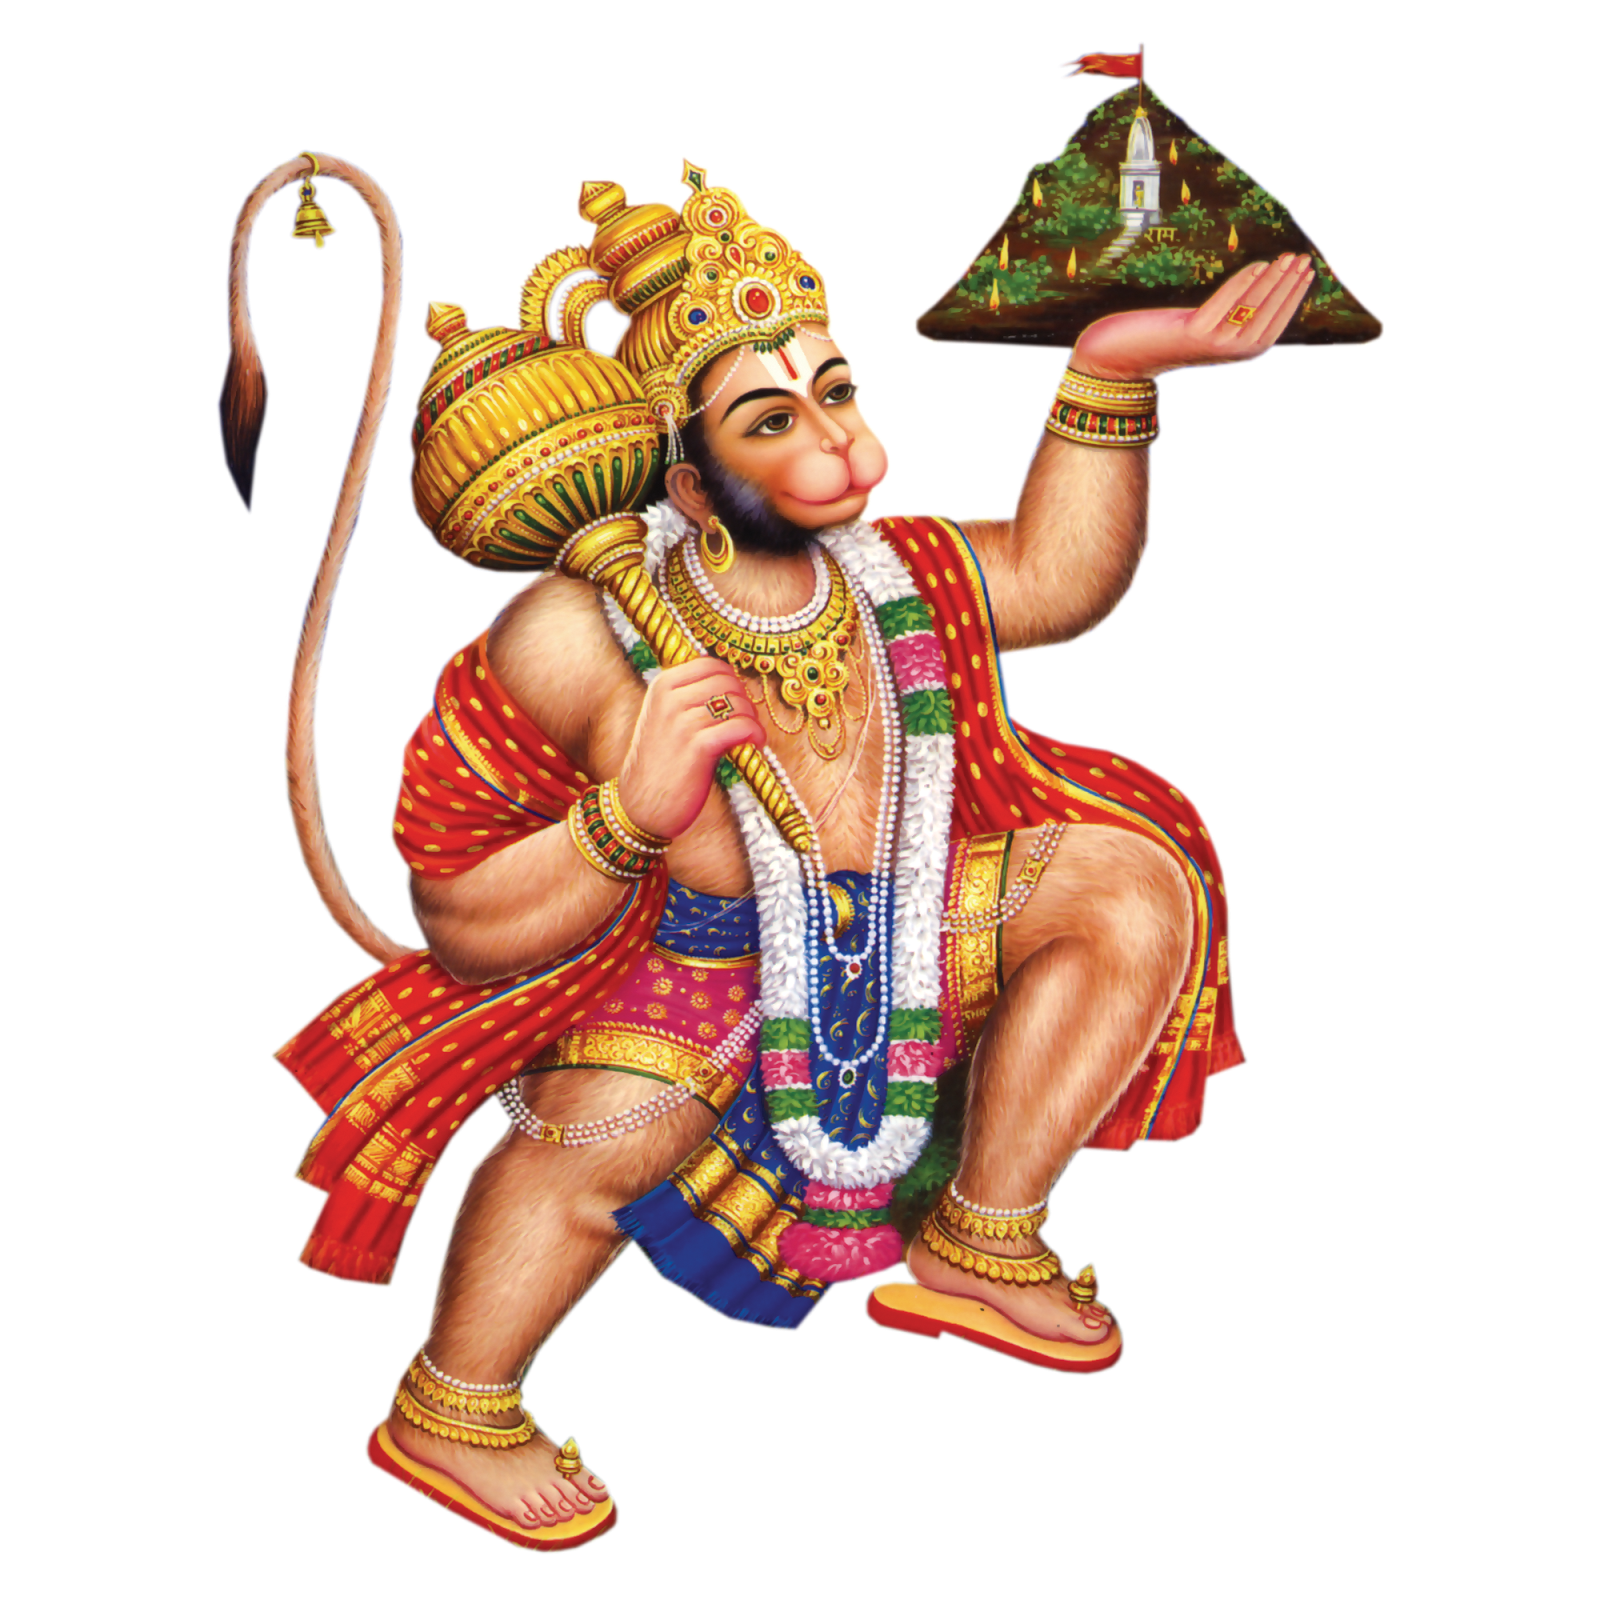 hanuman, hindu god abhaya anjaneya swamy images and photos 20575